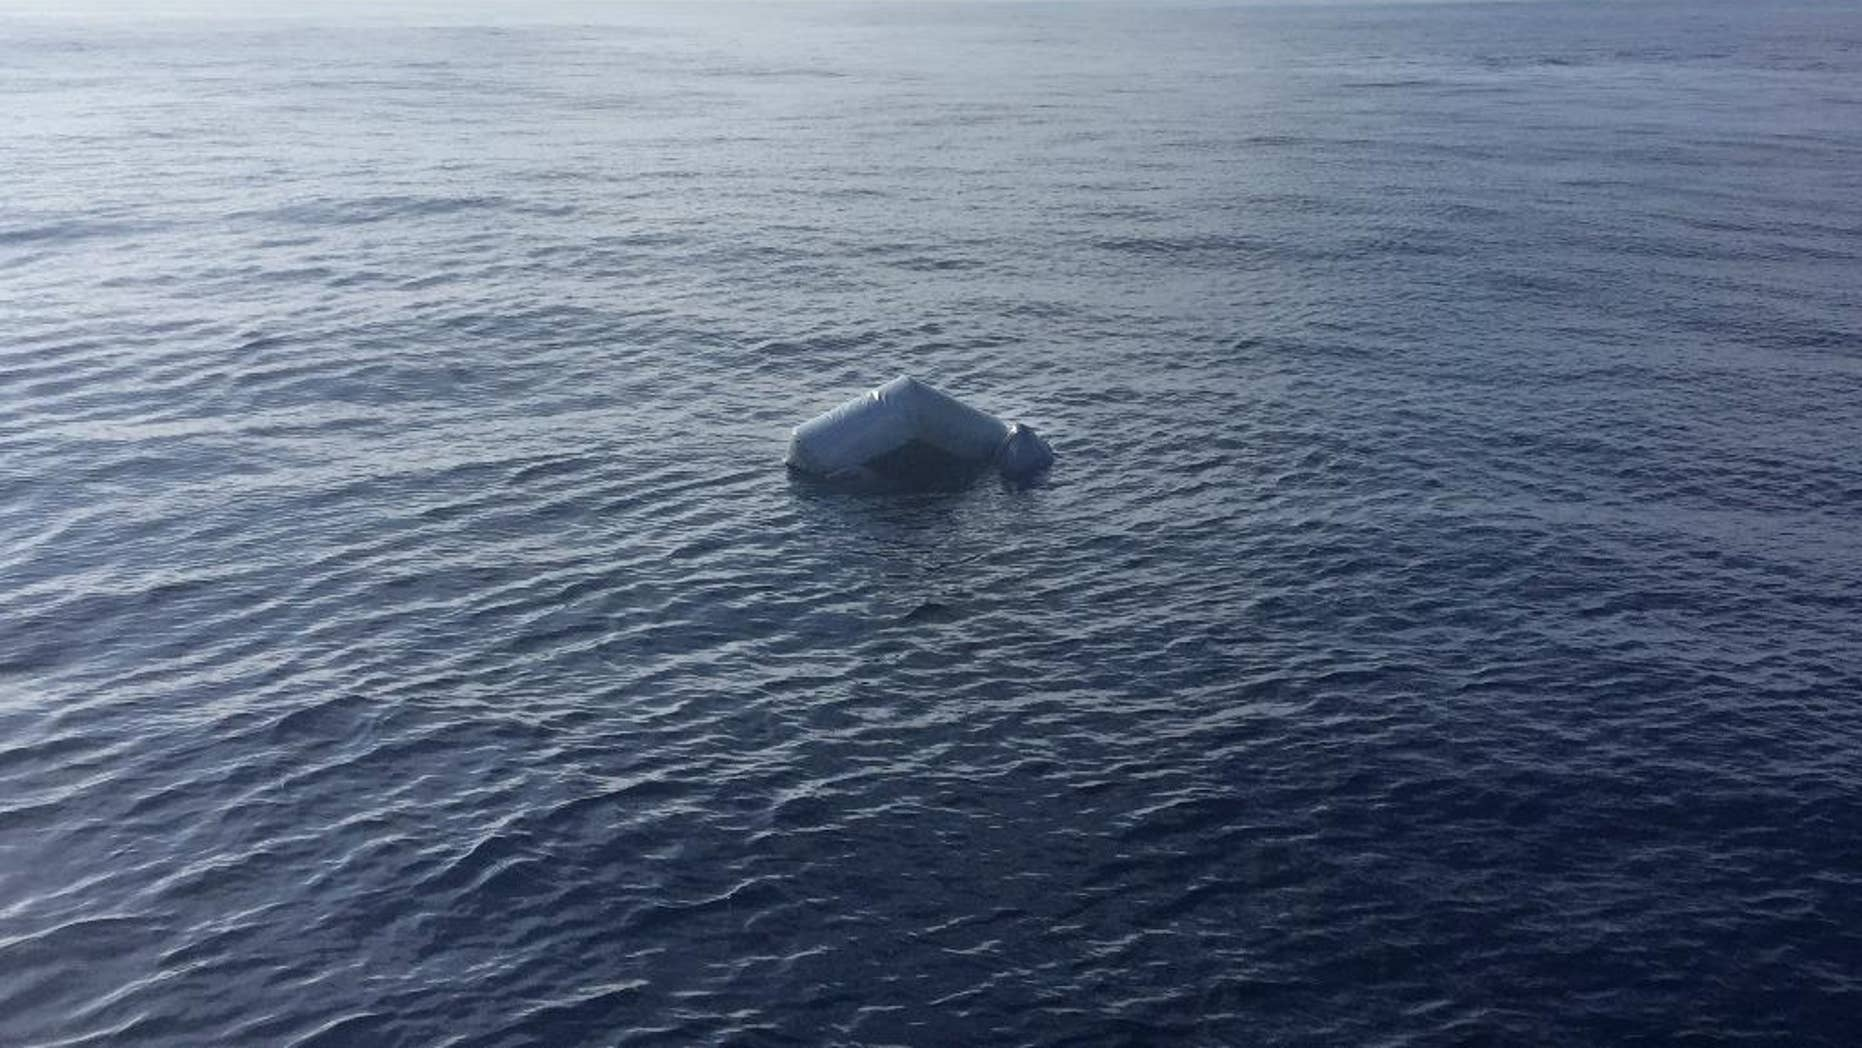 In this photo released by Proactiva Open Arms NGO on Friday, March 24, 2017 an upturned rubber boat floats in the Mediterranean Sea off the Libyan coast, during a search and rescue operation by Spanish NGO Proactiva Open Arms. A Spanish aid organization says it fears hundreds of migrants may have died off the coast of Libya after five bodies were found near two capsized boats and the search for a third vessel reported missing had so far proved futile. (Proactiva Open Arms via AP)